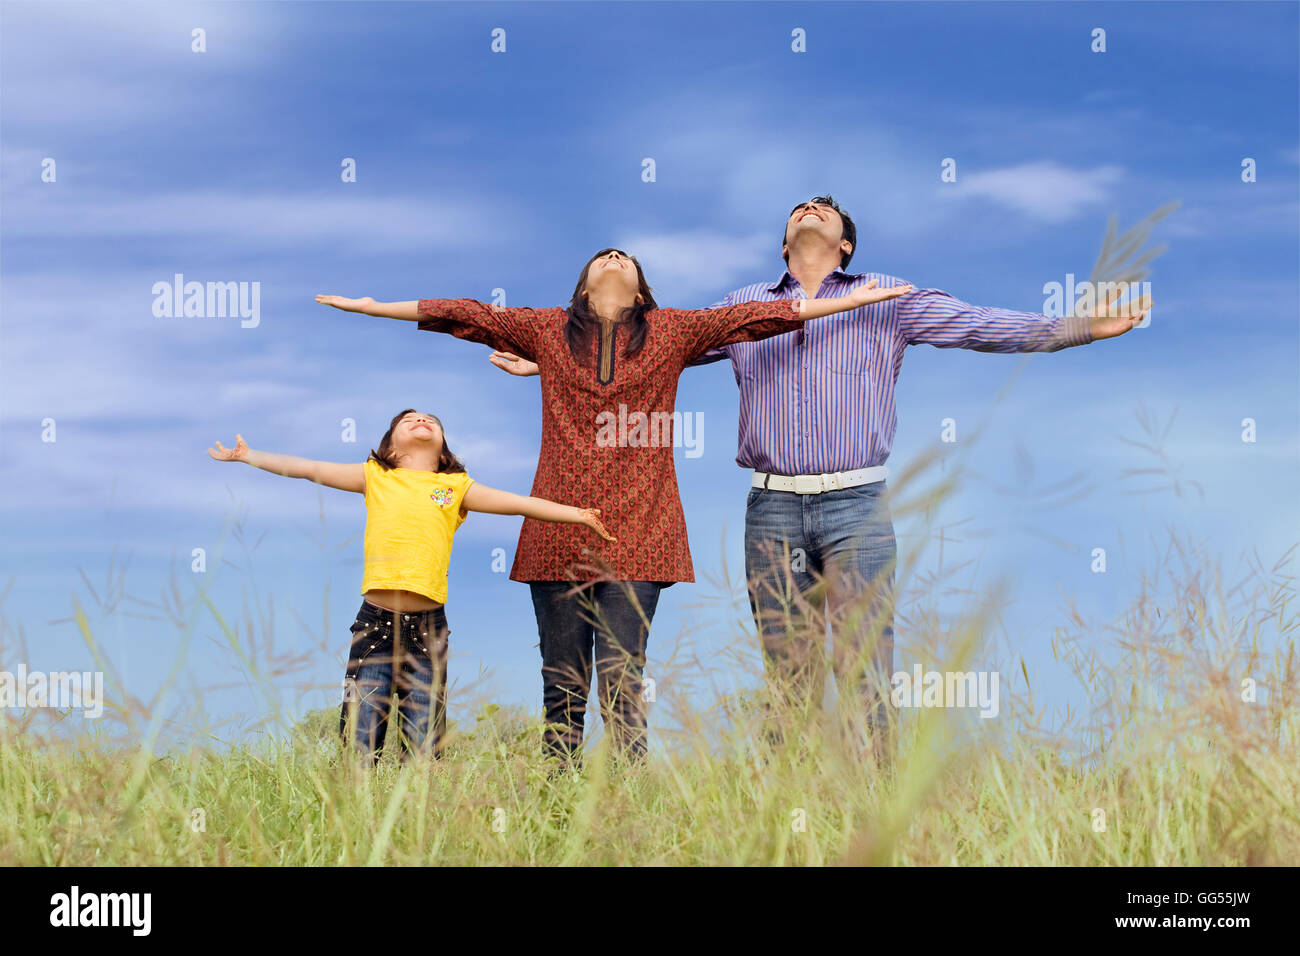 Family at the park - Stock Image